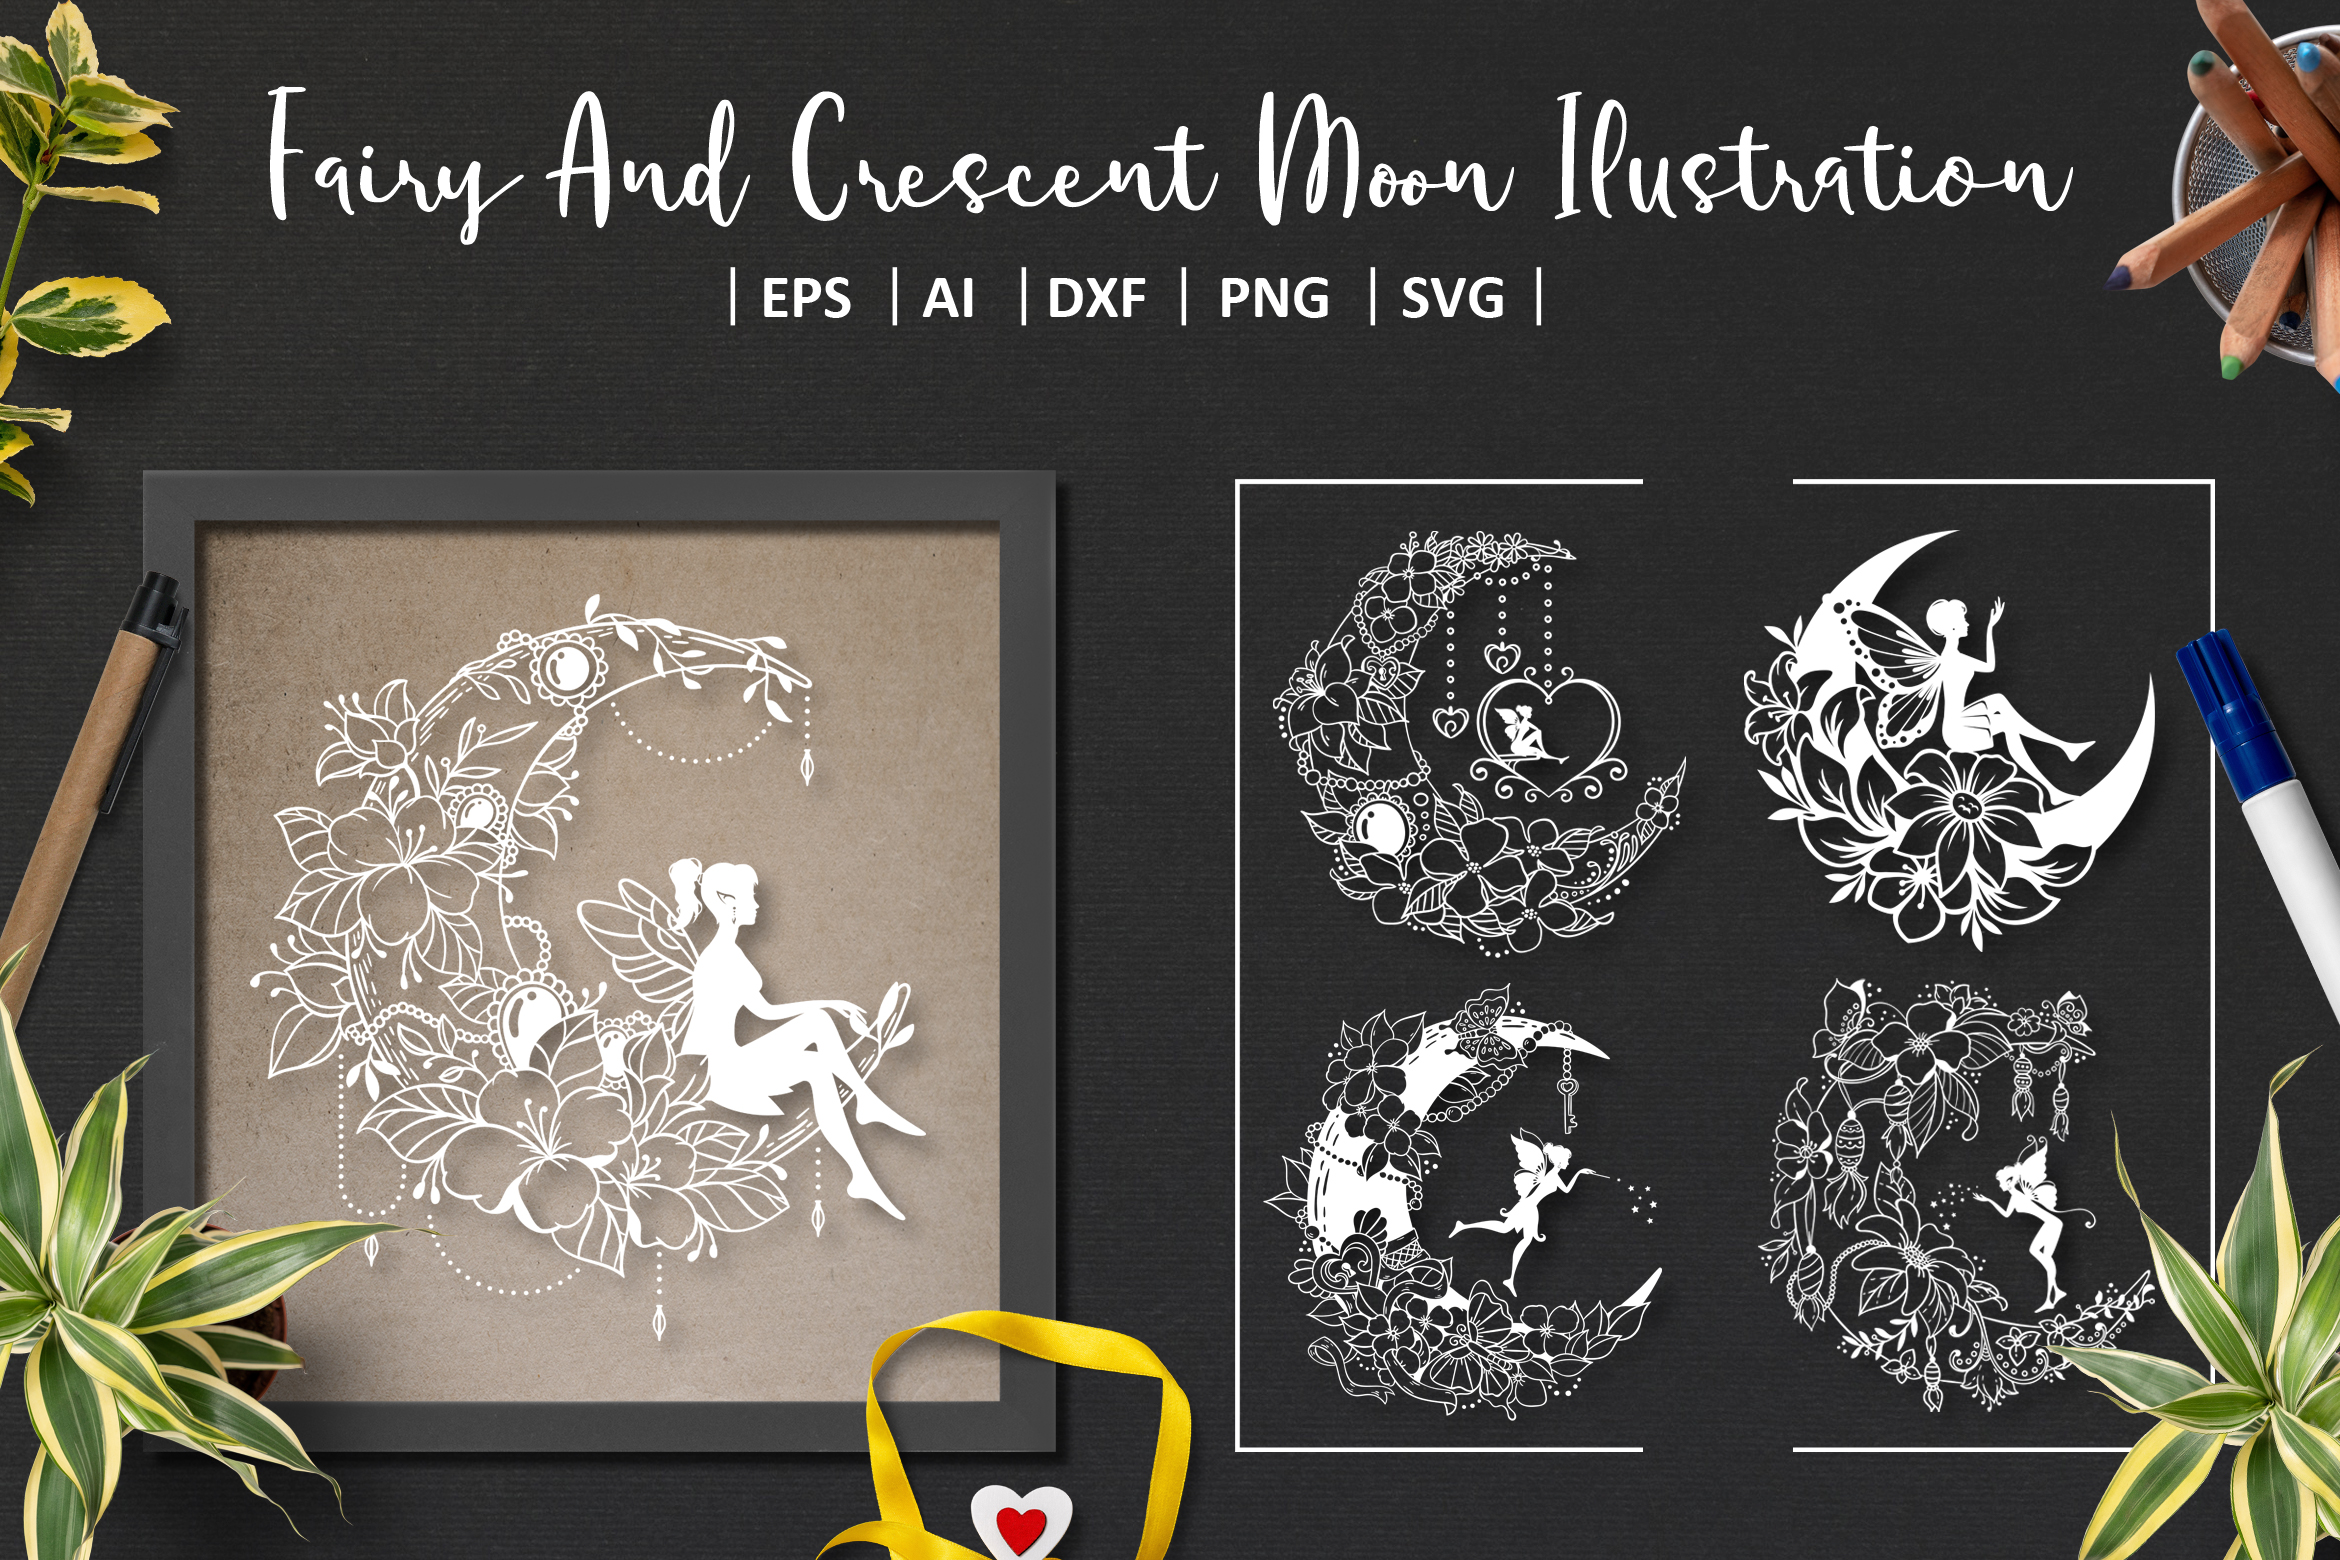 8 Crescent Moon and Fairy SVG SVG File